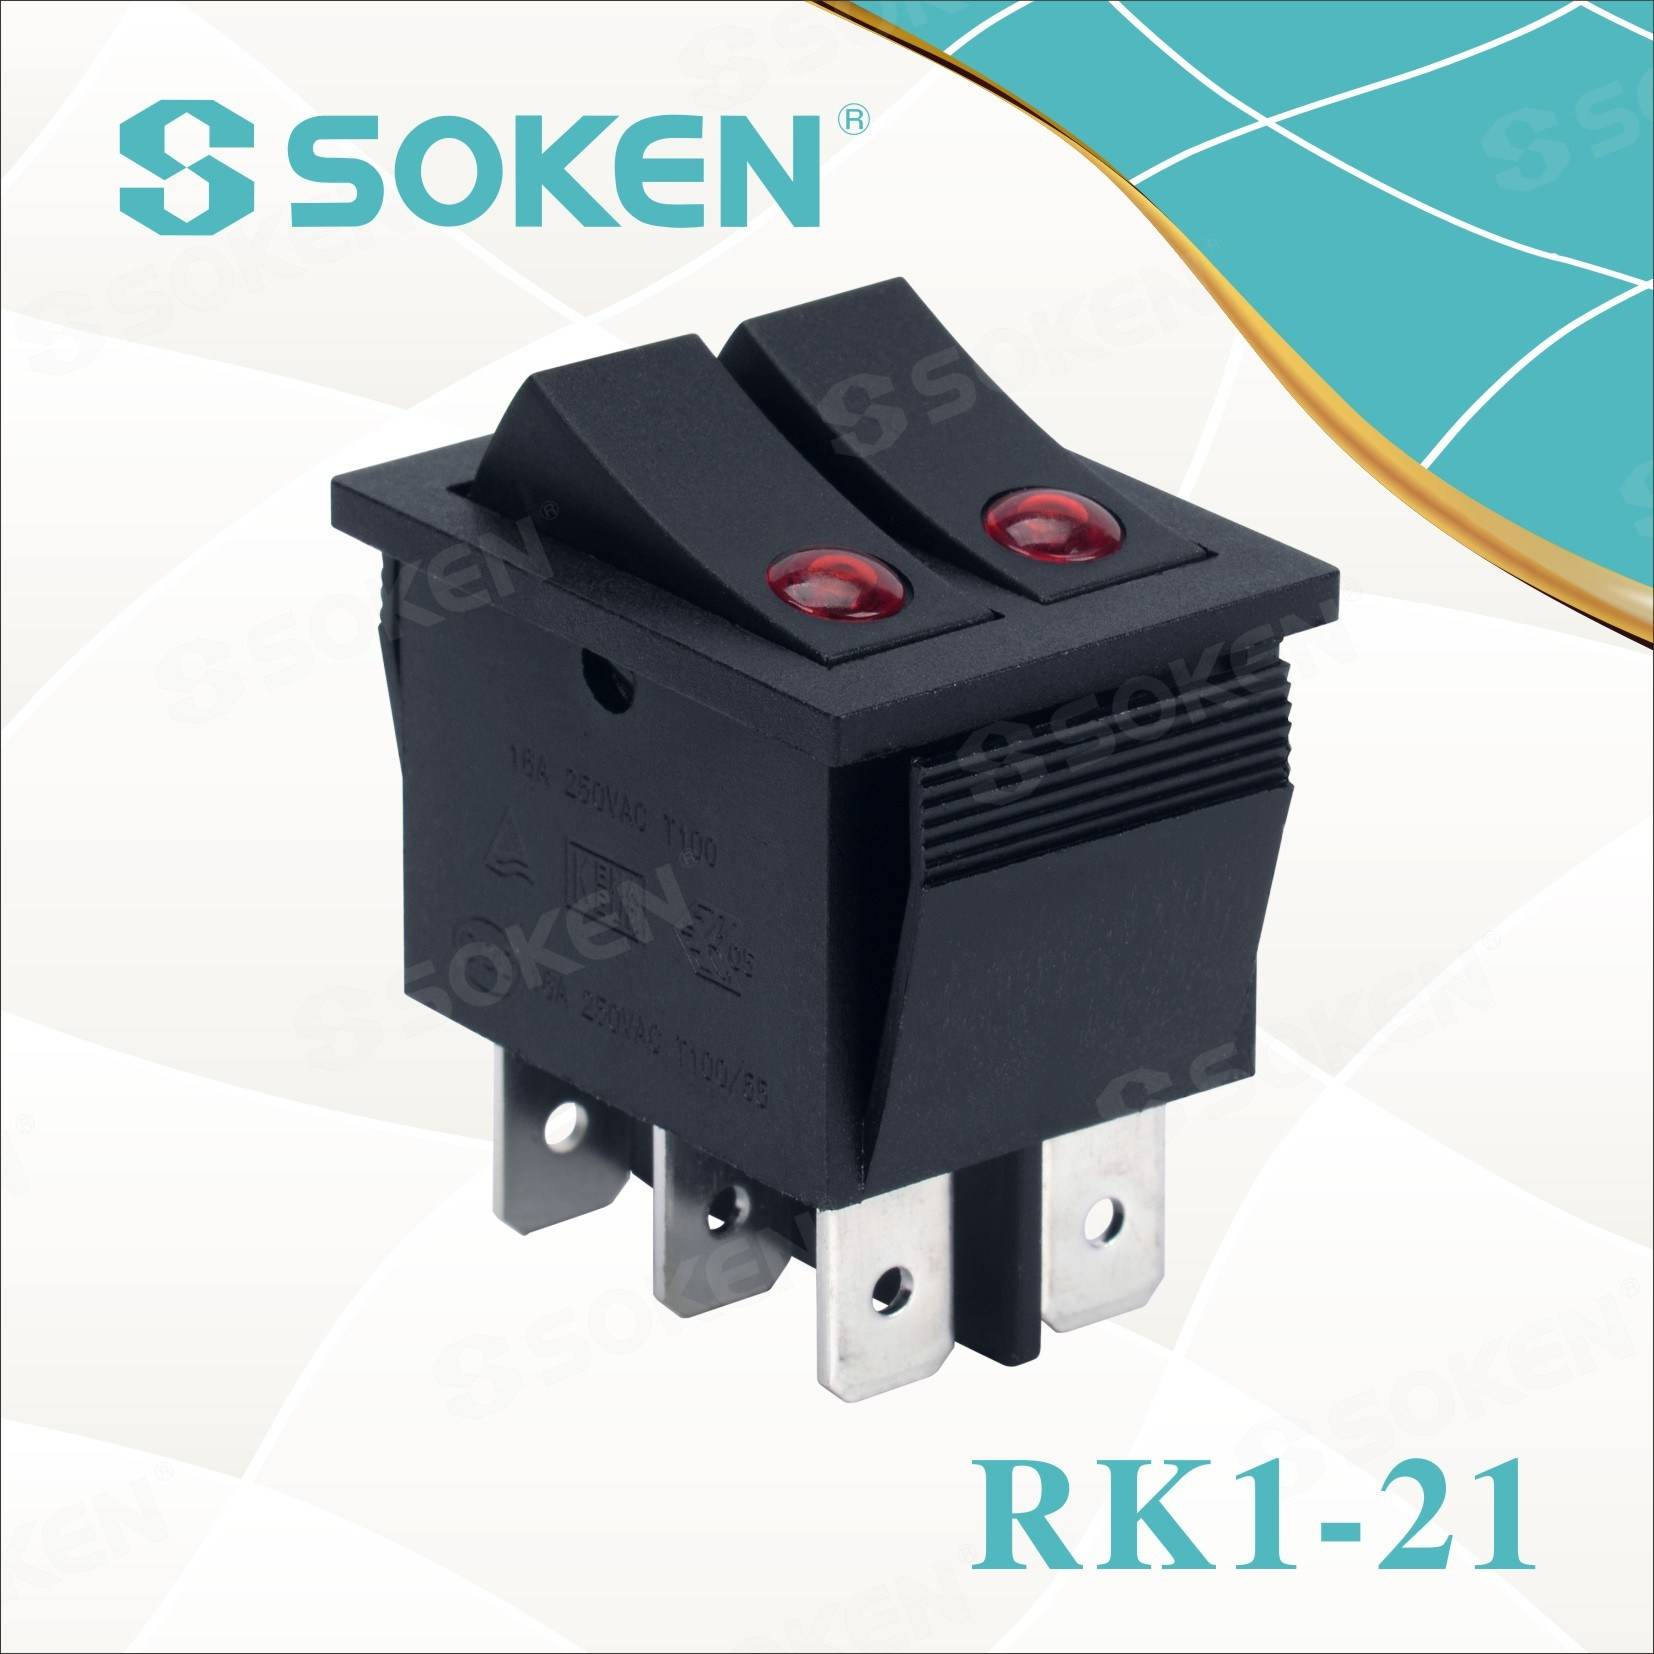 Quality Inspection for High Quality Turn Light -